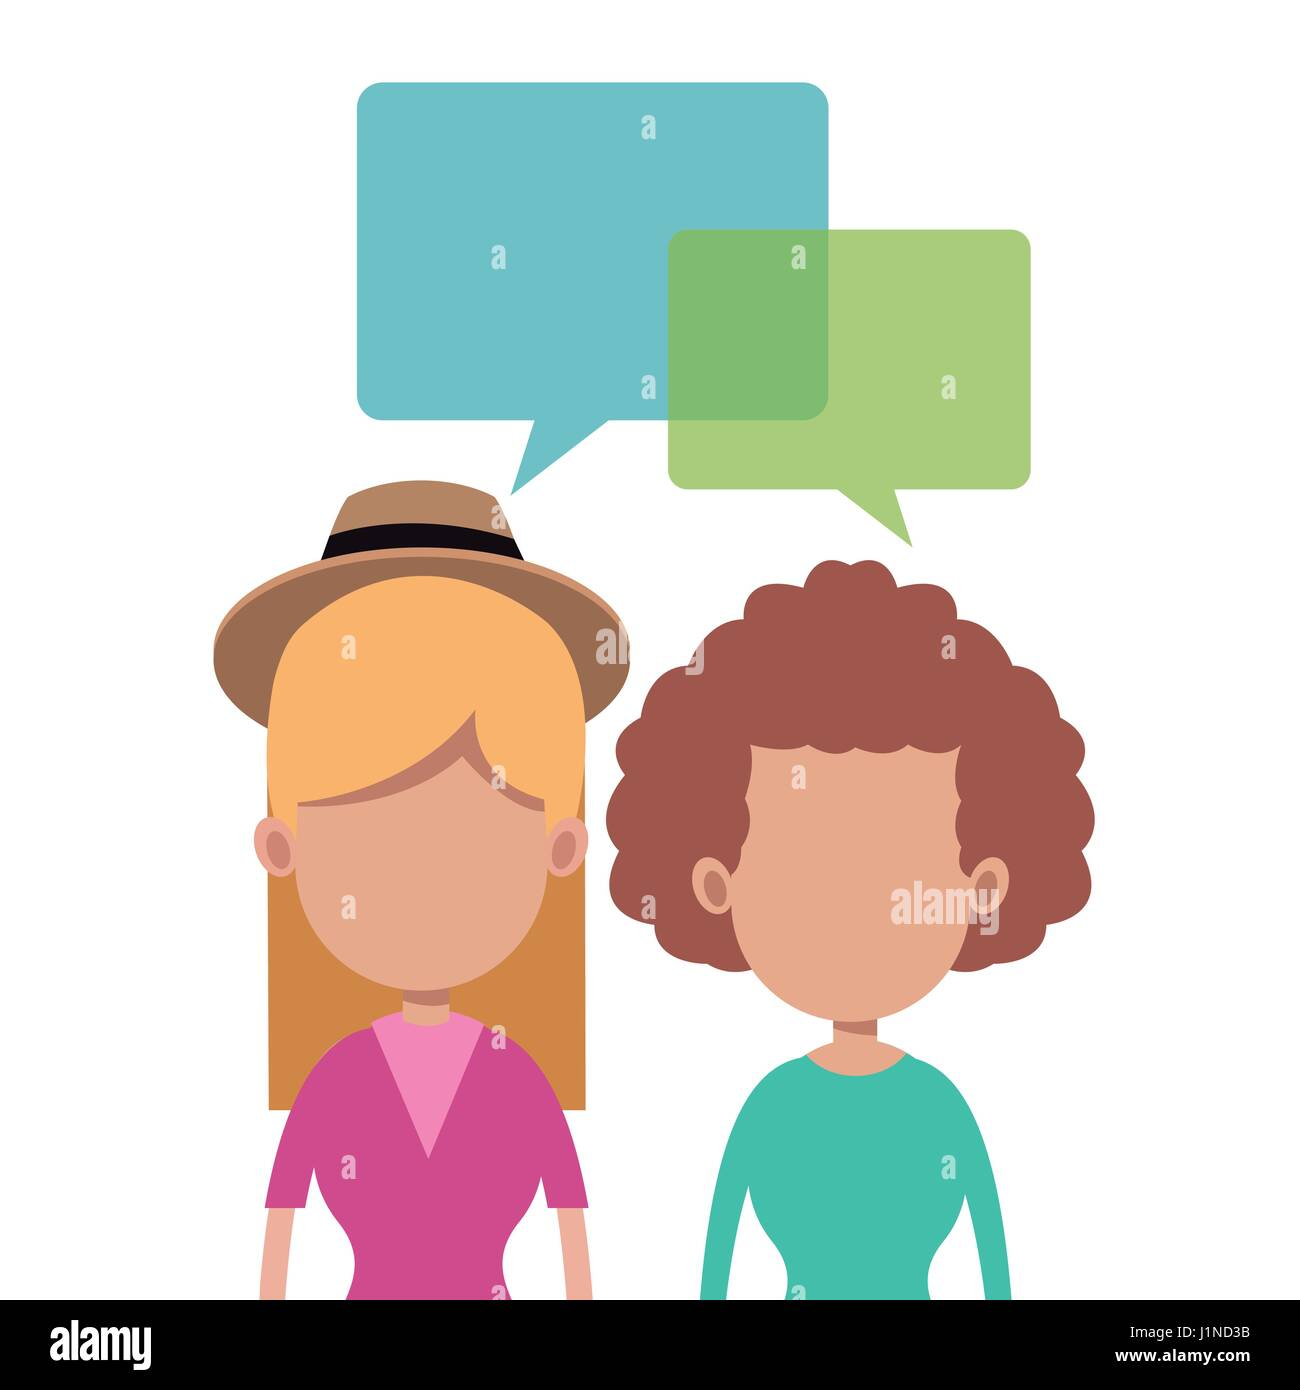 women together talking image Stock Vector